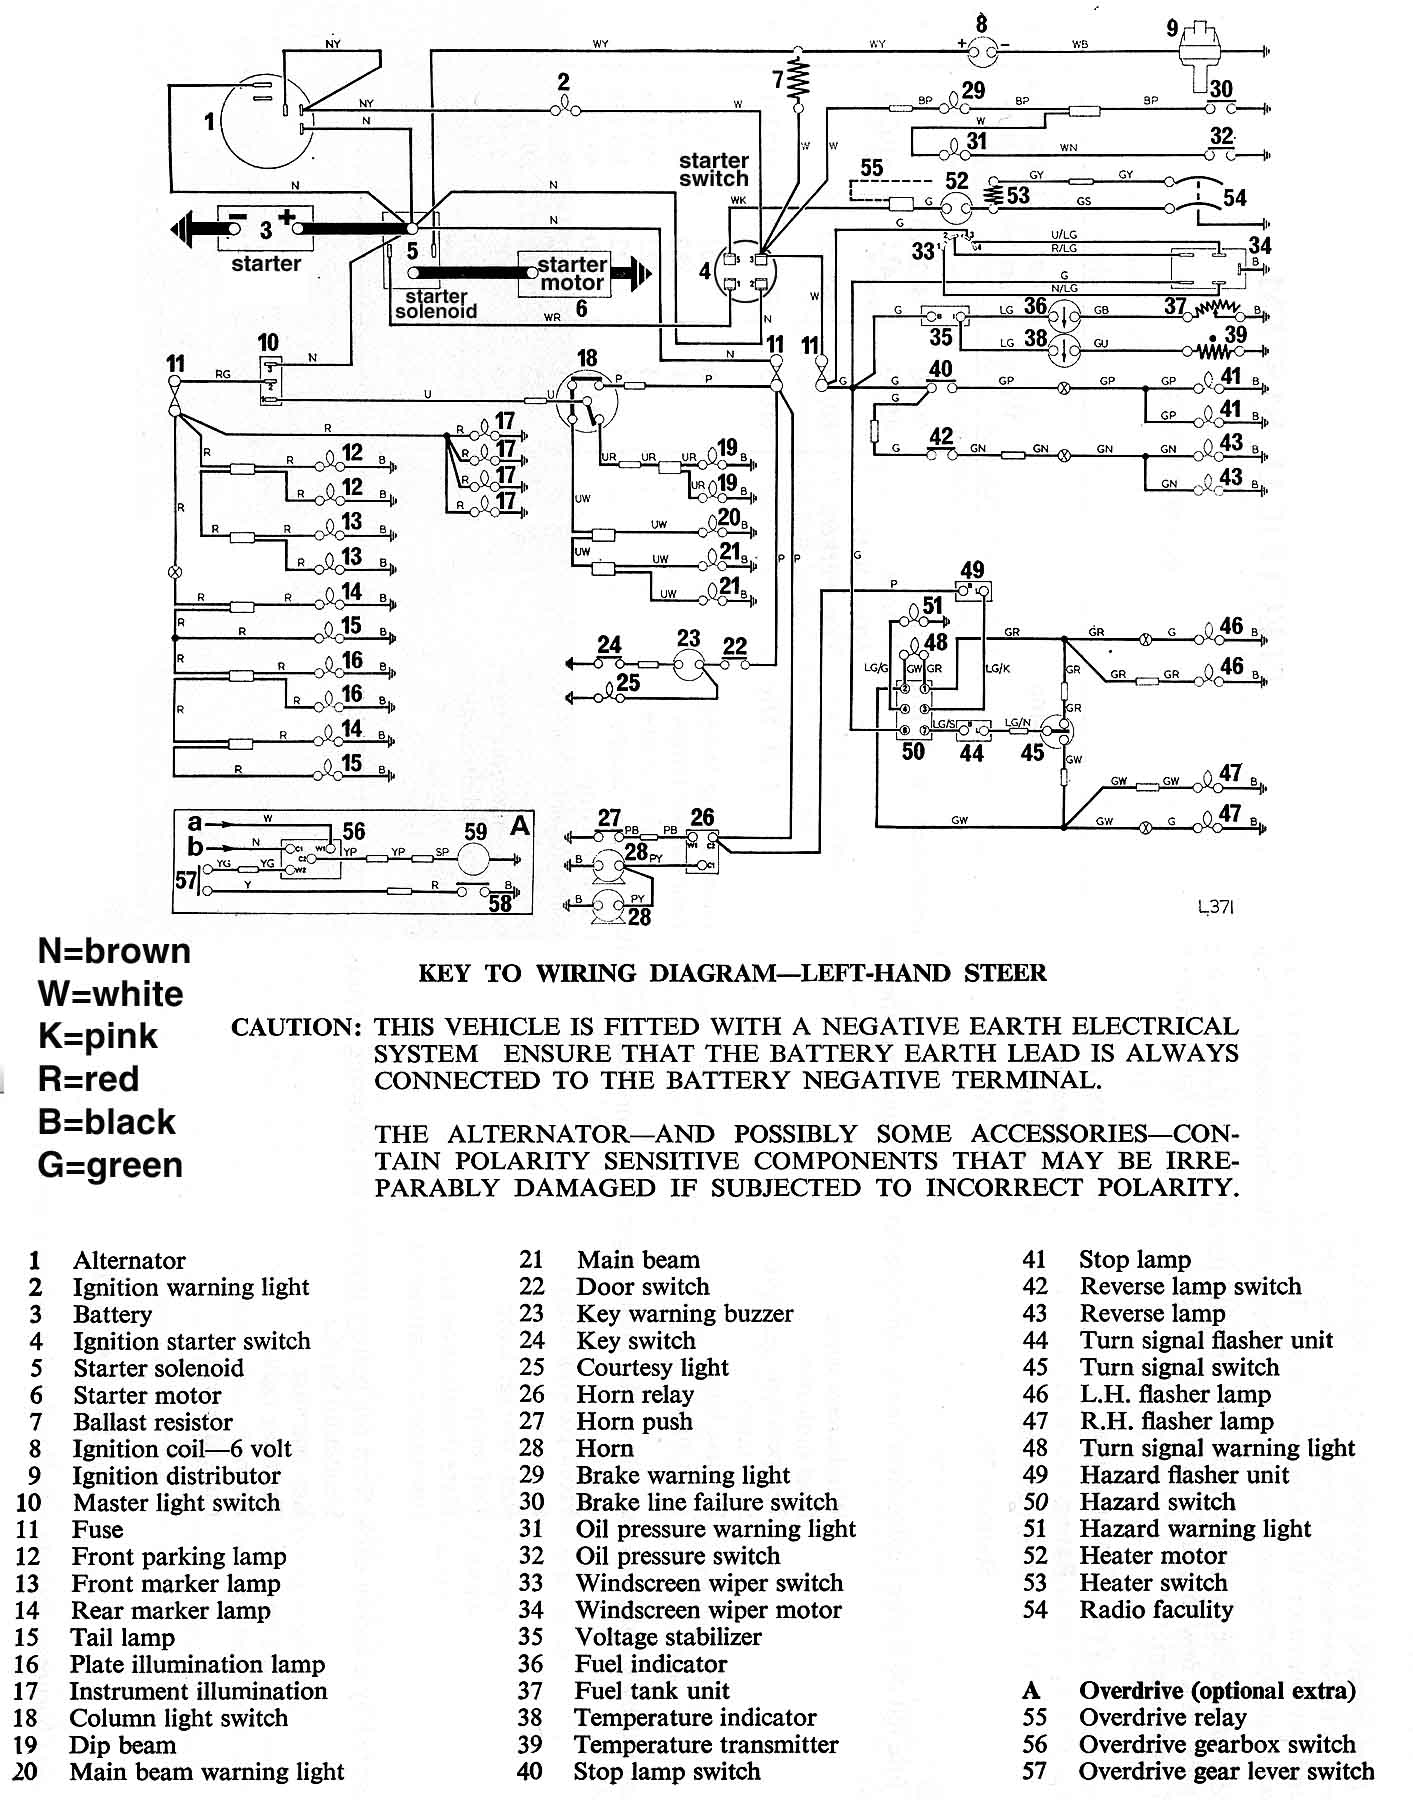 how to wire up an alternator  i need some electrical genius help   spitfire  u0026 gt6 forum